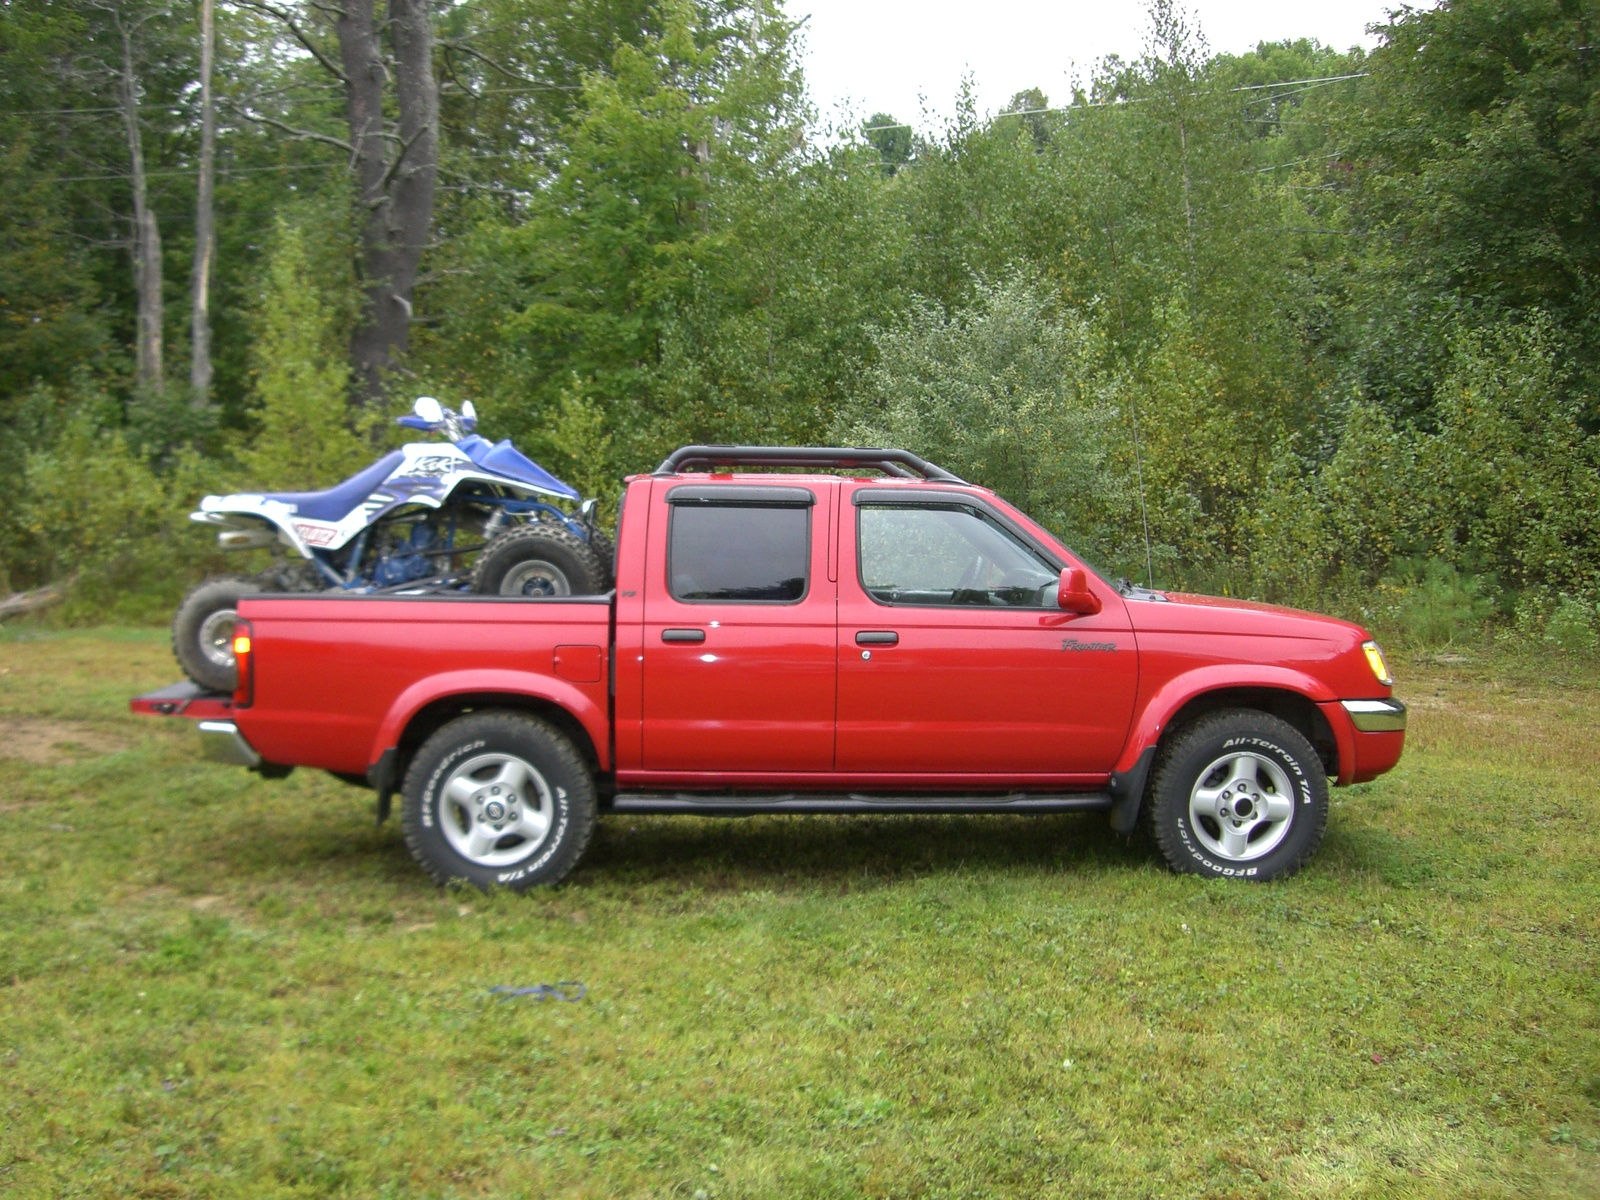 sale placeholder paid prices nissan car new frontier price used generic image value